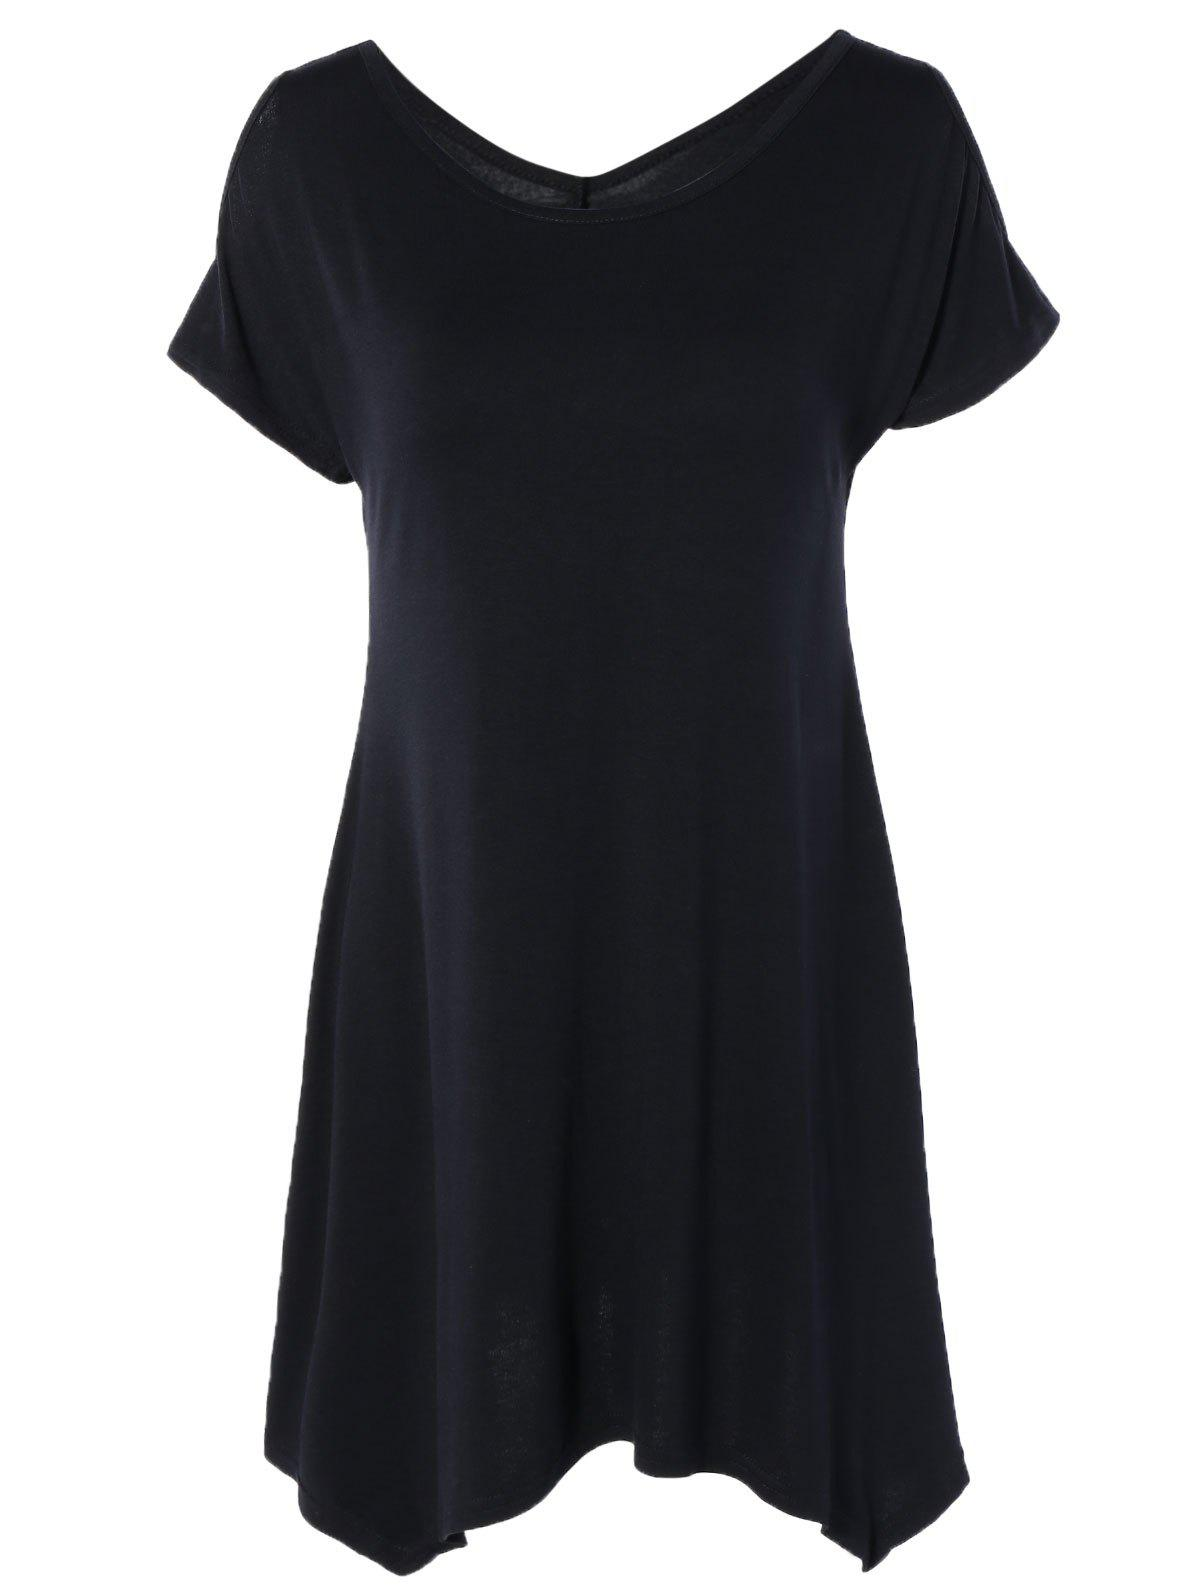 Scoop Neck Cold Shoulder Asymmetric T-Shirt - BLACK XL